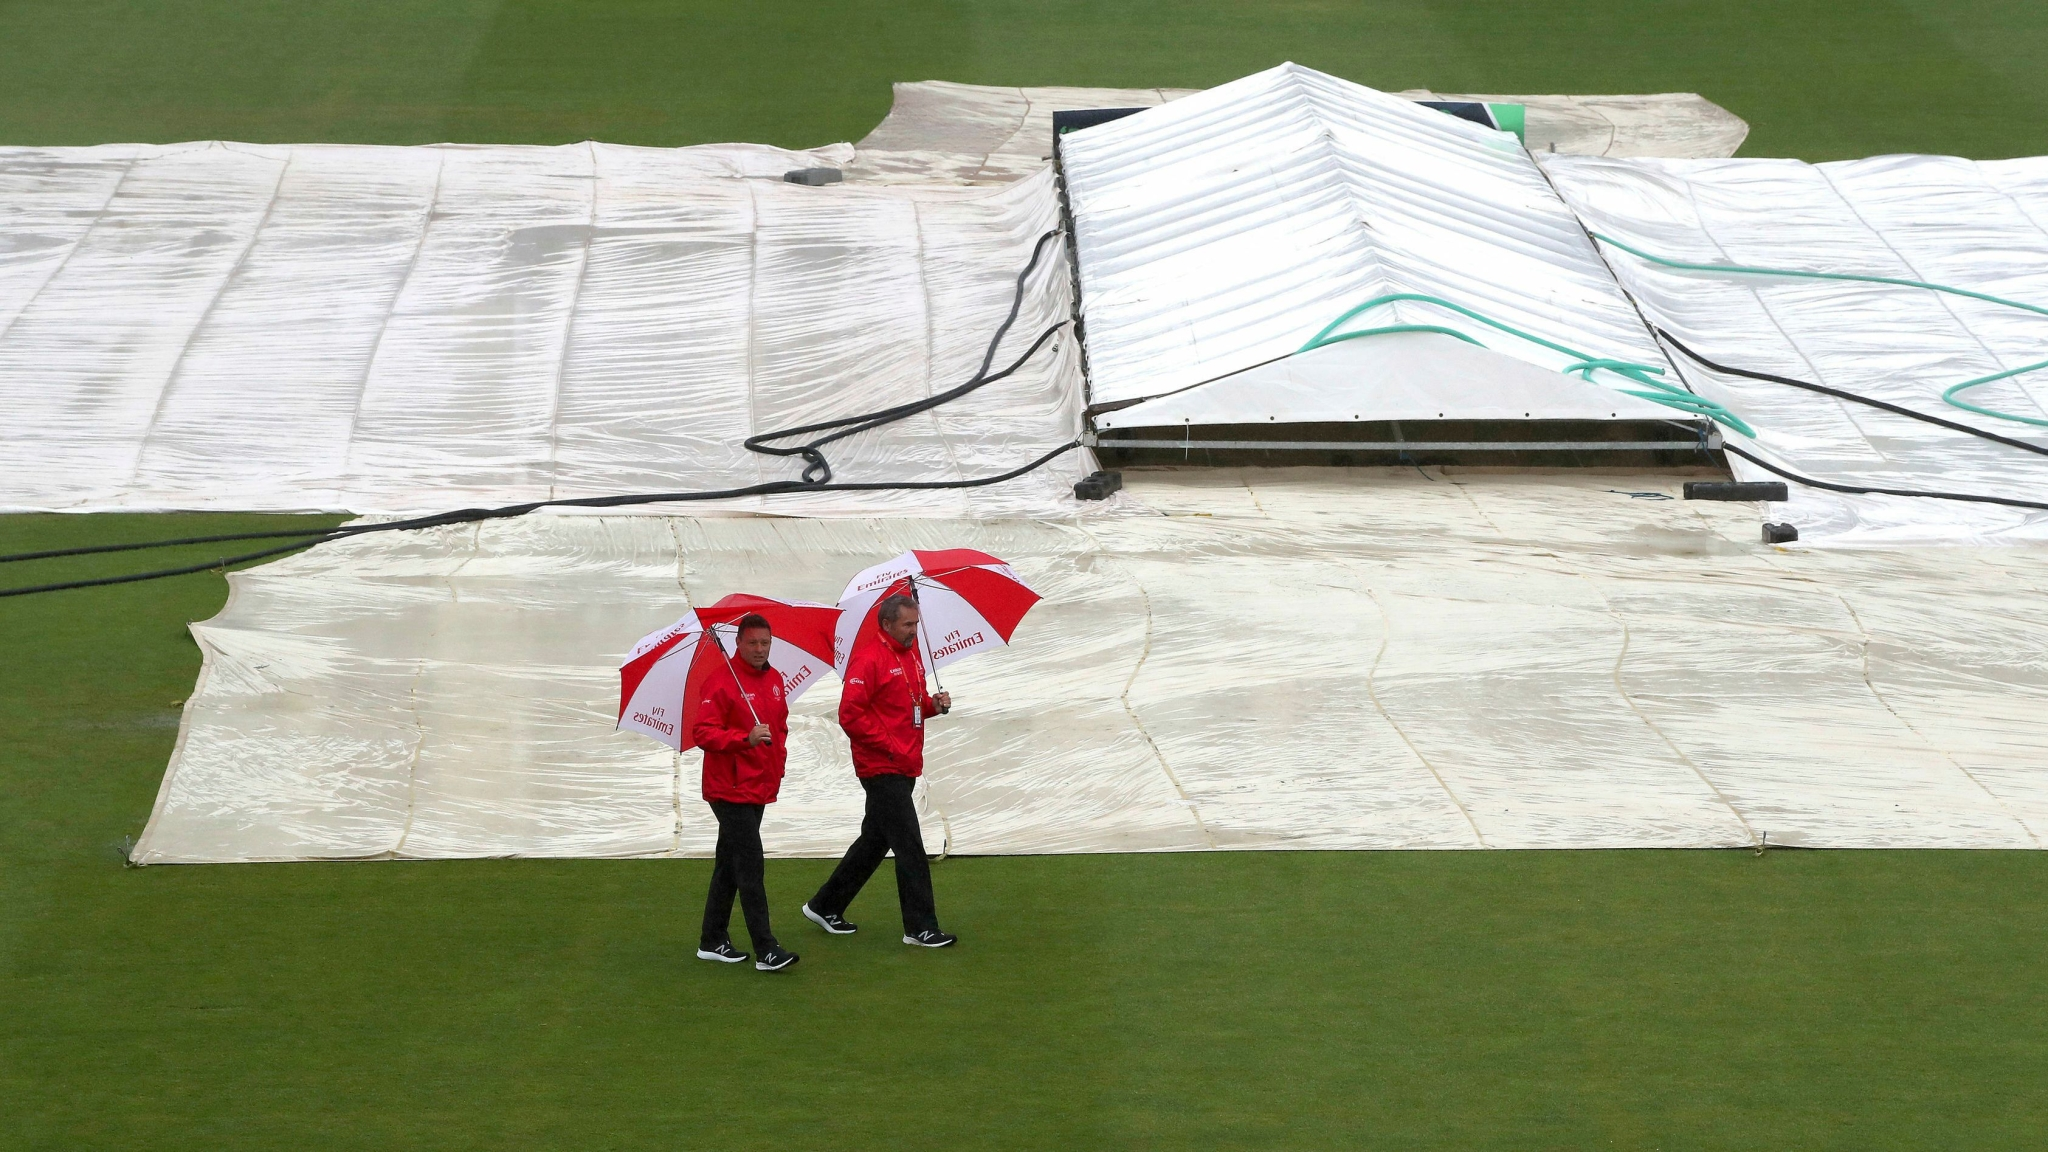 BAN vs SL Washed Out: This WC Sets Record for Most Abandoned Games